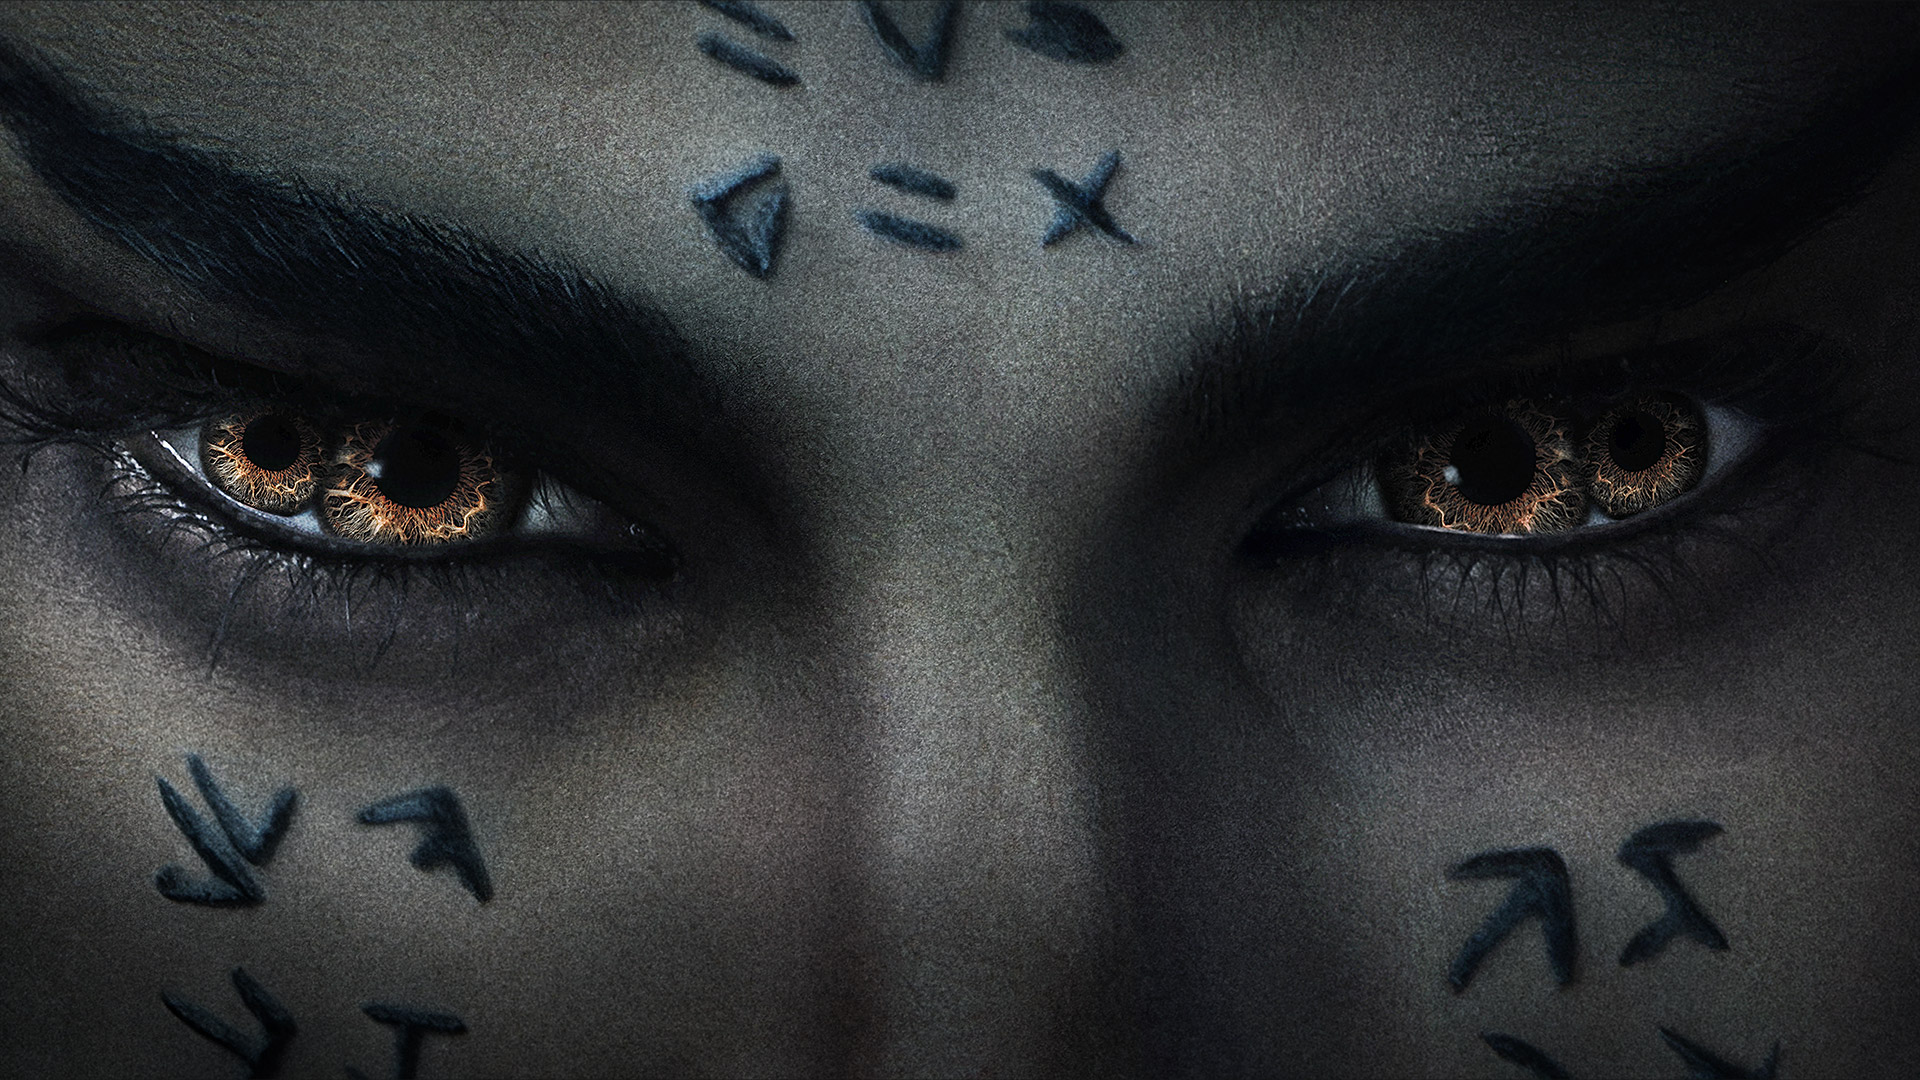 Wallpaper The Mummy 2017 Movies Hd Movies 4142: The Mummy Movie Review